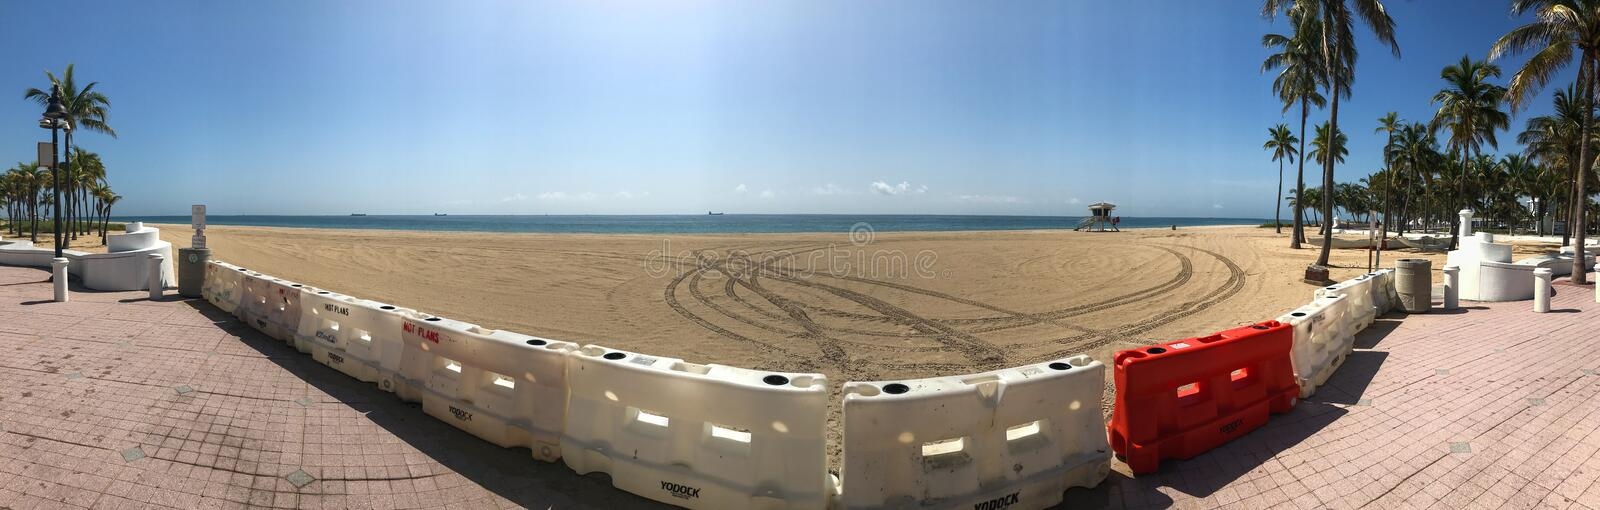 Panoramic View Shots Barricades Blocking Entrance To Beach During Pandemic stock photography